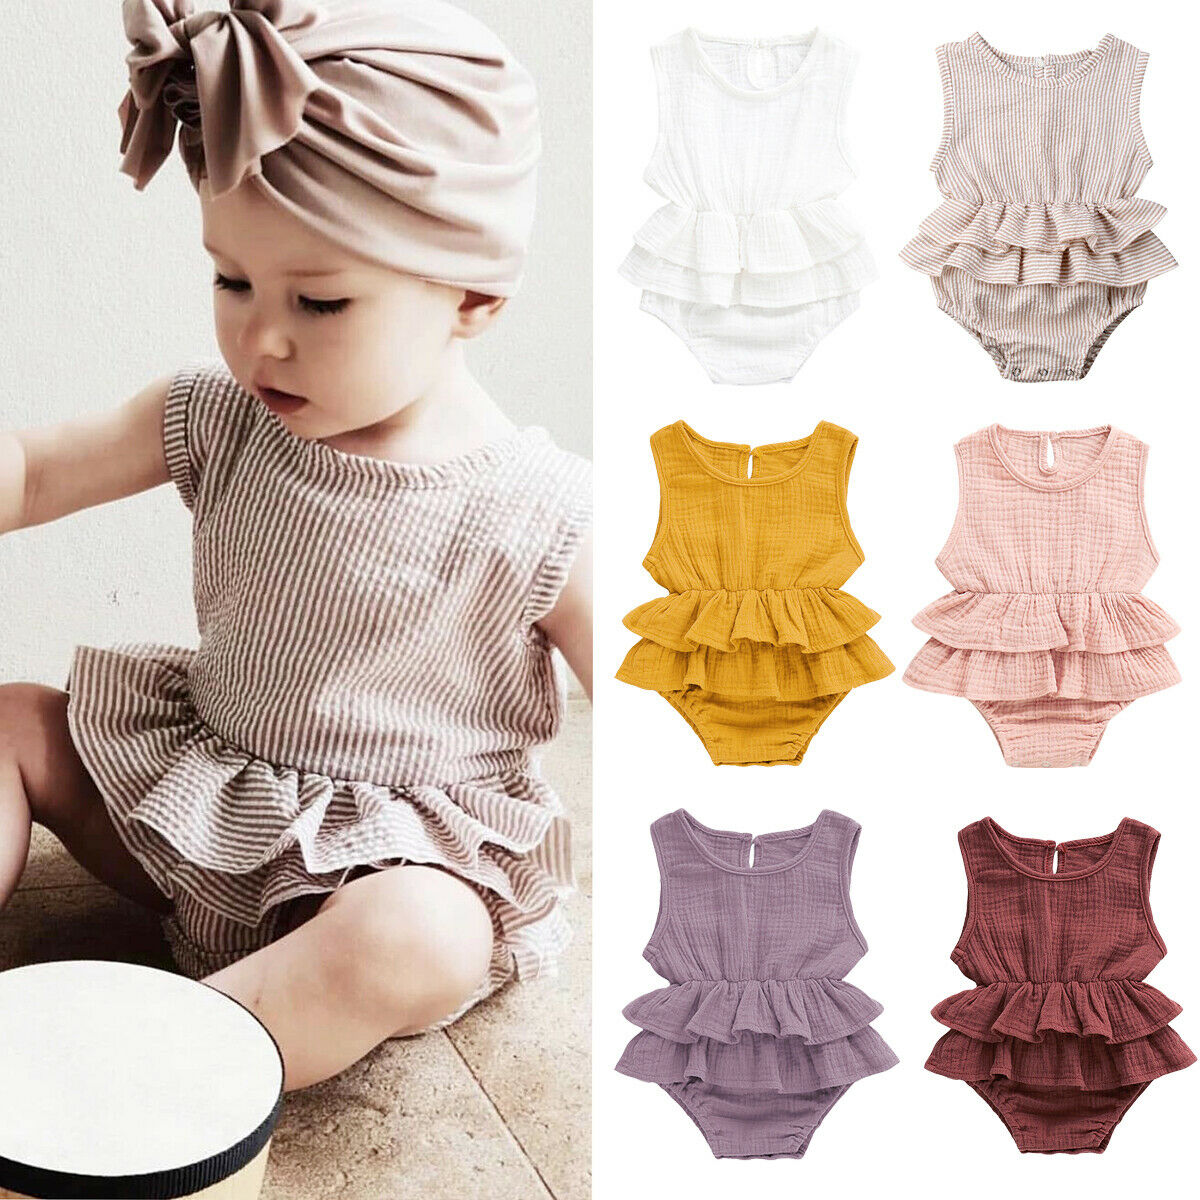 2019 Infant Baby Girl Sleeveless   Romper   Cotton Fibre Flutter Sleeve One-Piece   Romper   Jumpsuit Summer Outfits